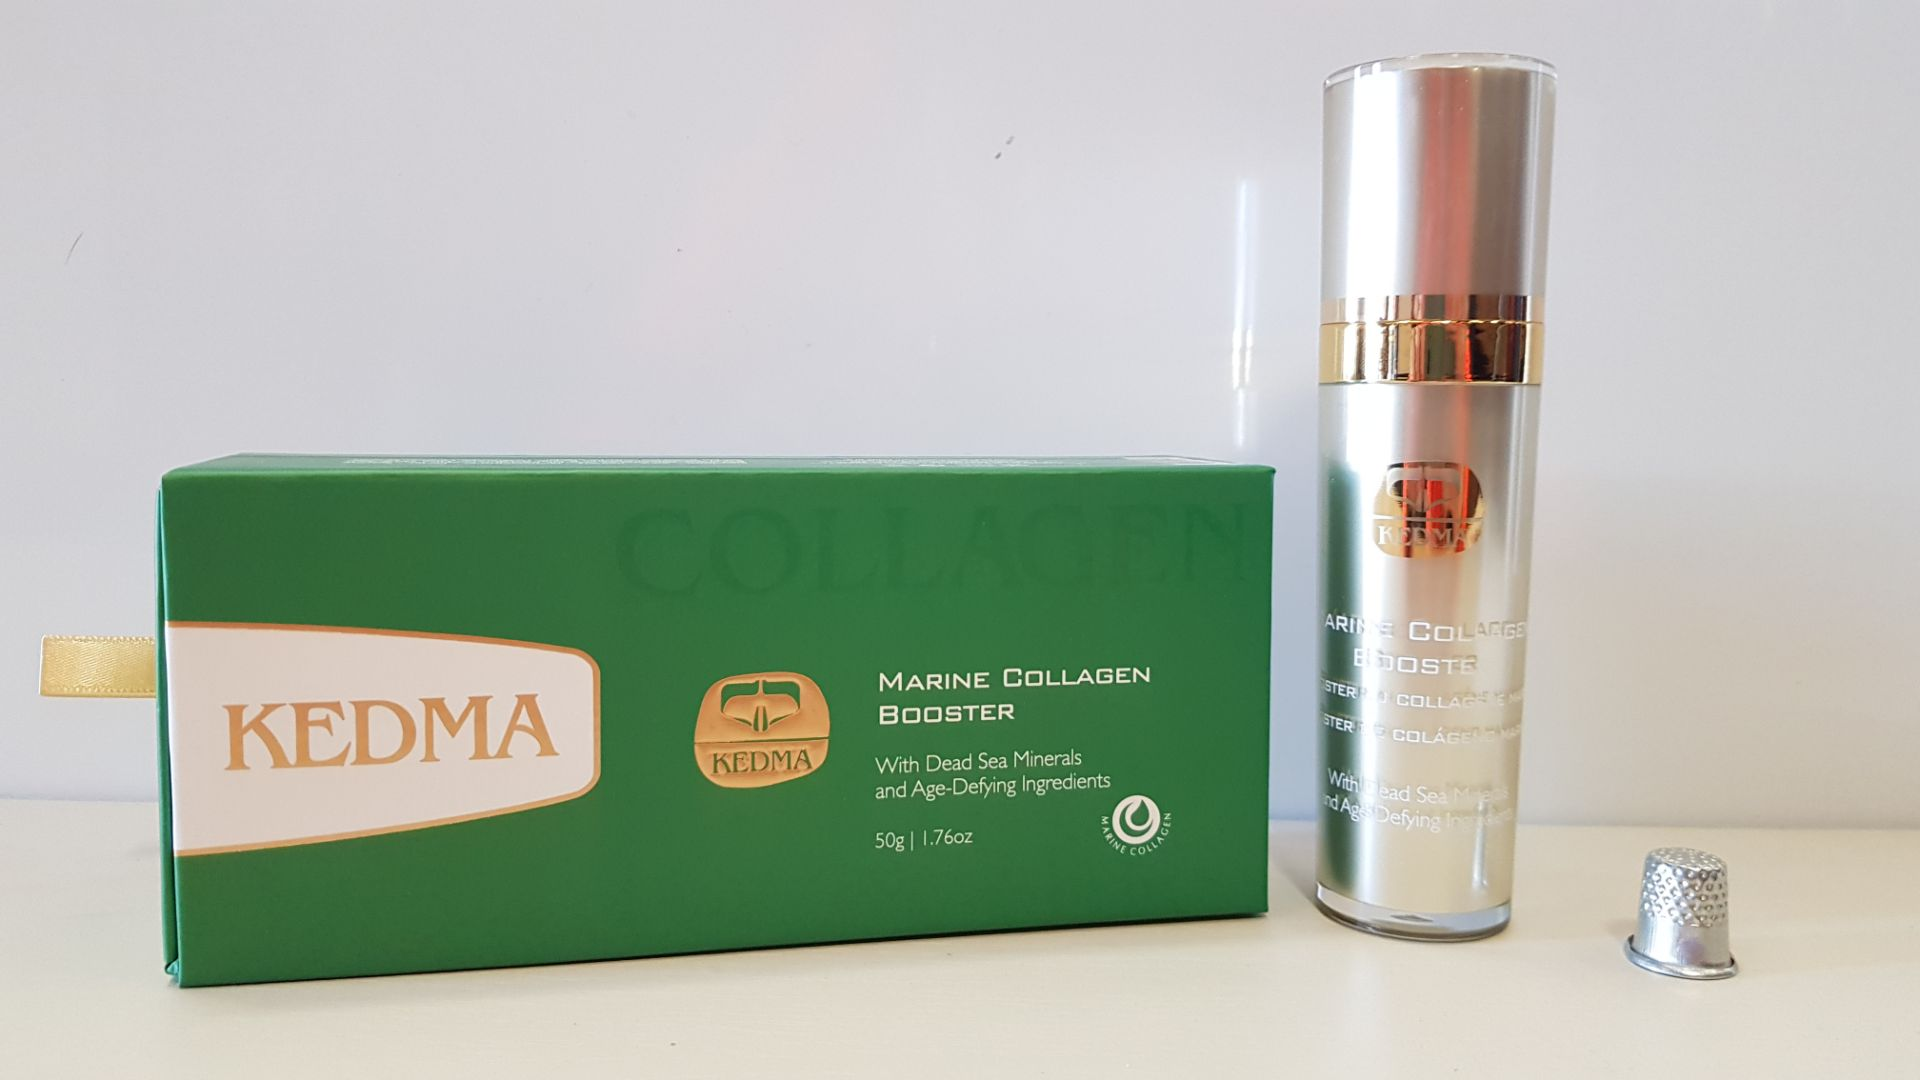 3 X BRAND NEW BOXED KEDMA MARINE COLLAGEN BOOSTER WITH DEAD SEA MINERALS AND AGE-DEFYING INGREDIENTS